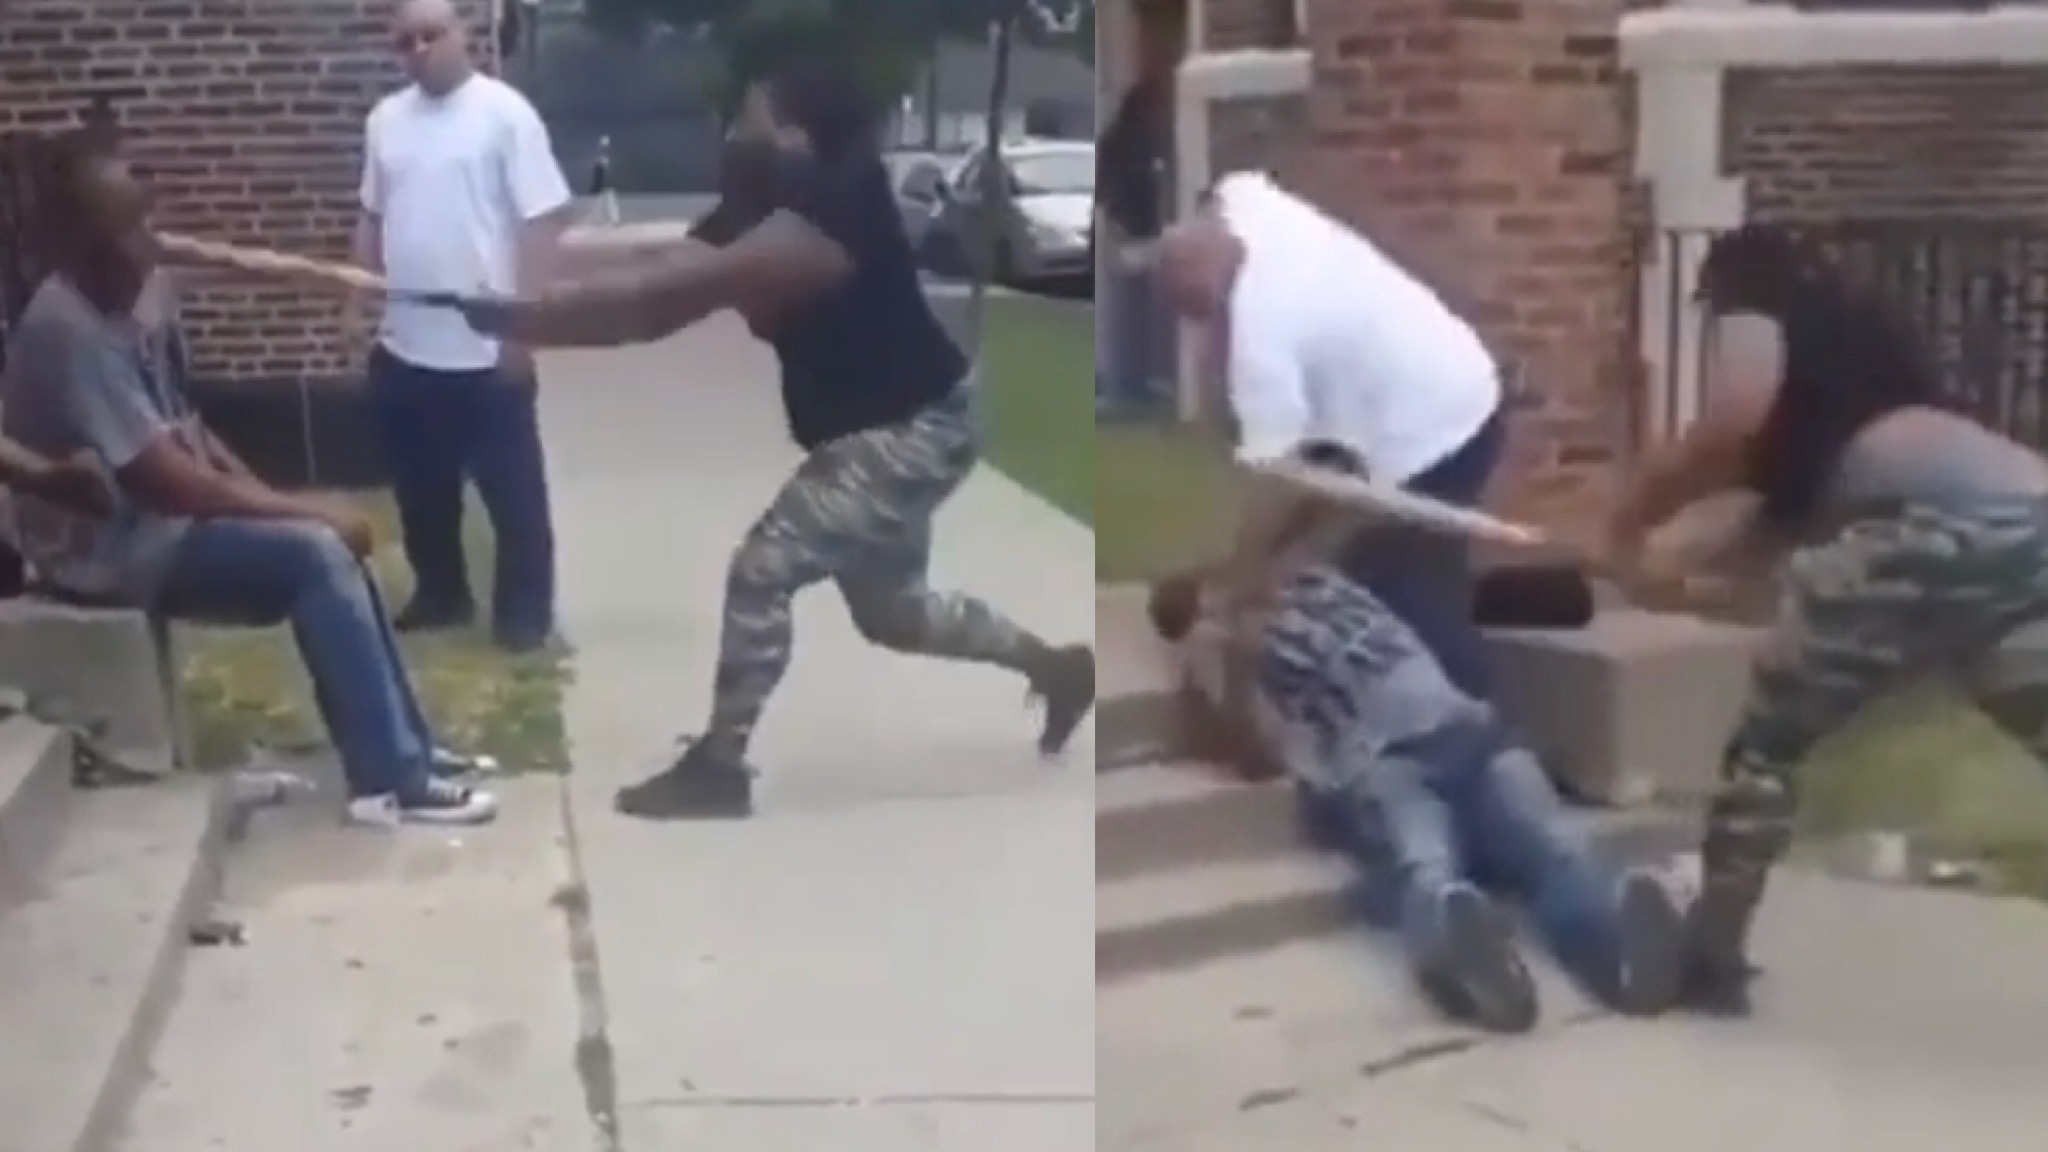 Crazy Fight: They Did Him Dirty! Women Cracks Man In The Head With A Bat! Then Jumped Him!